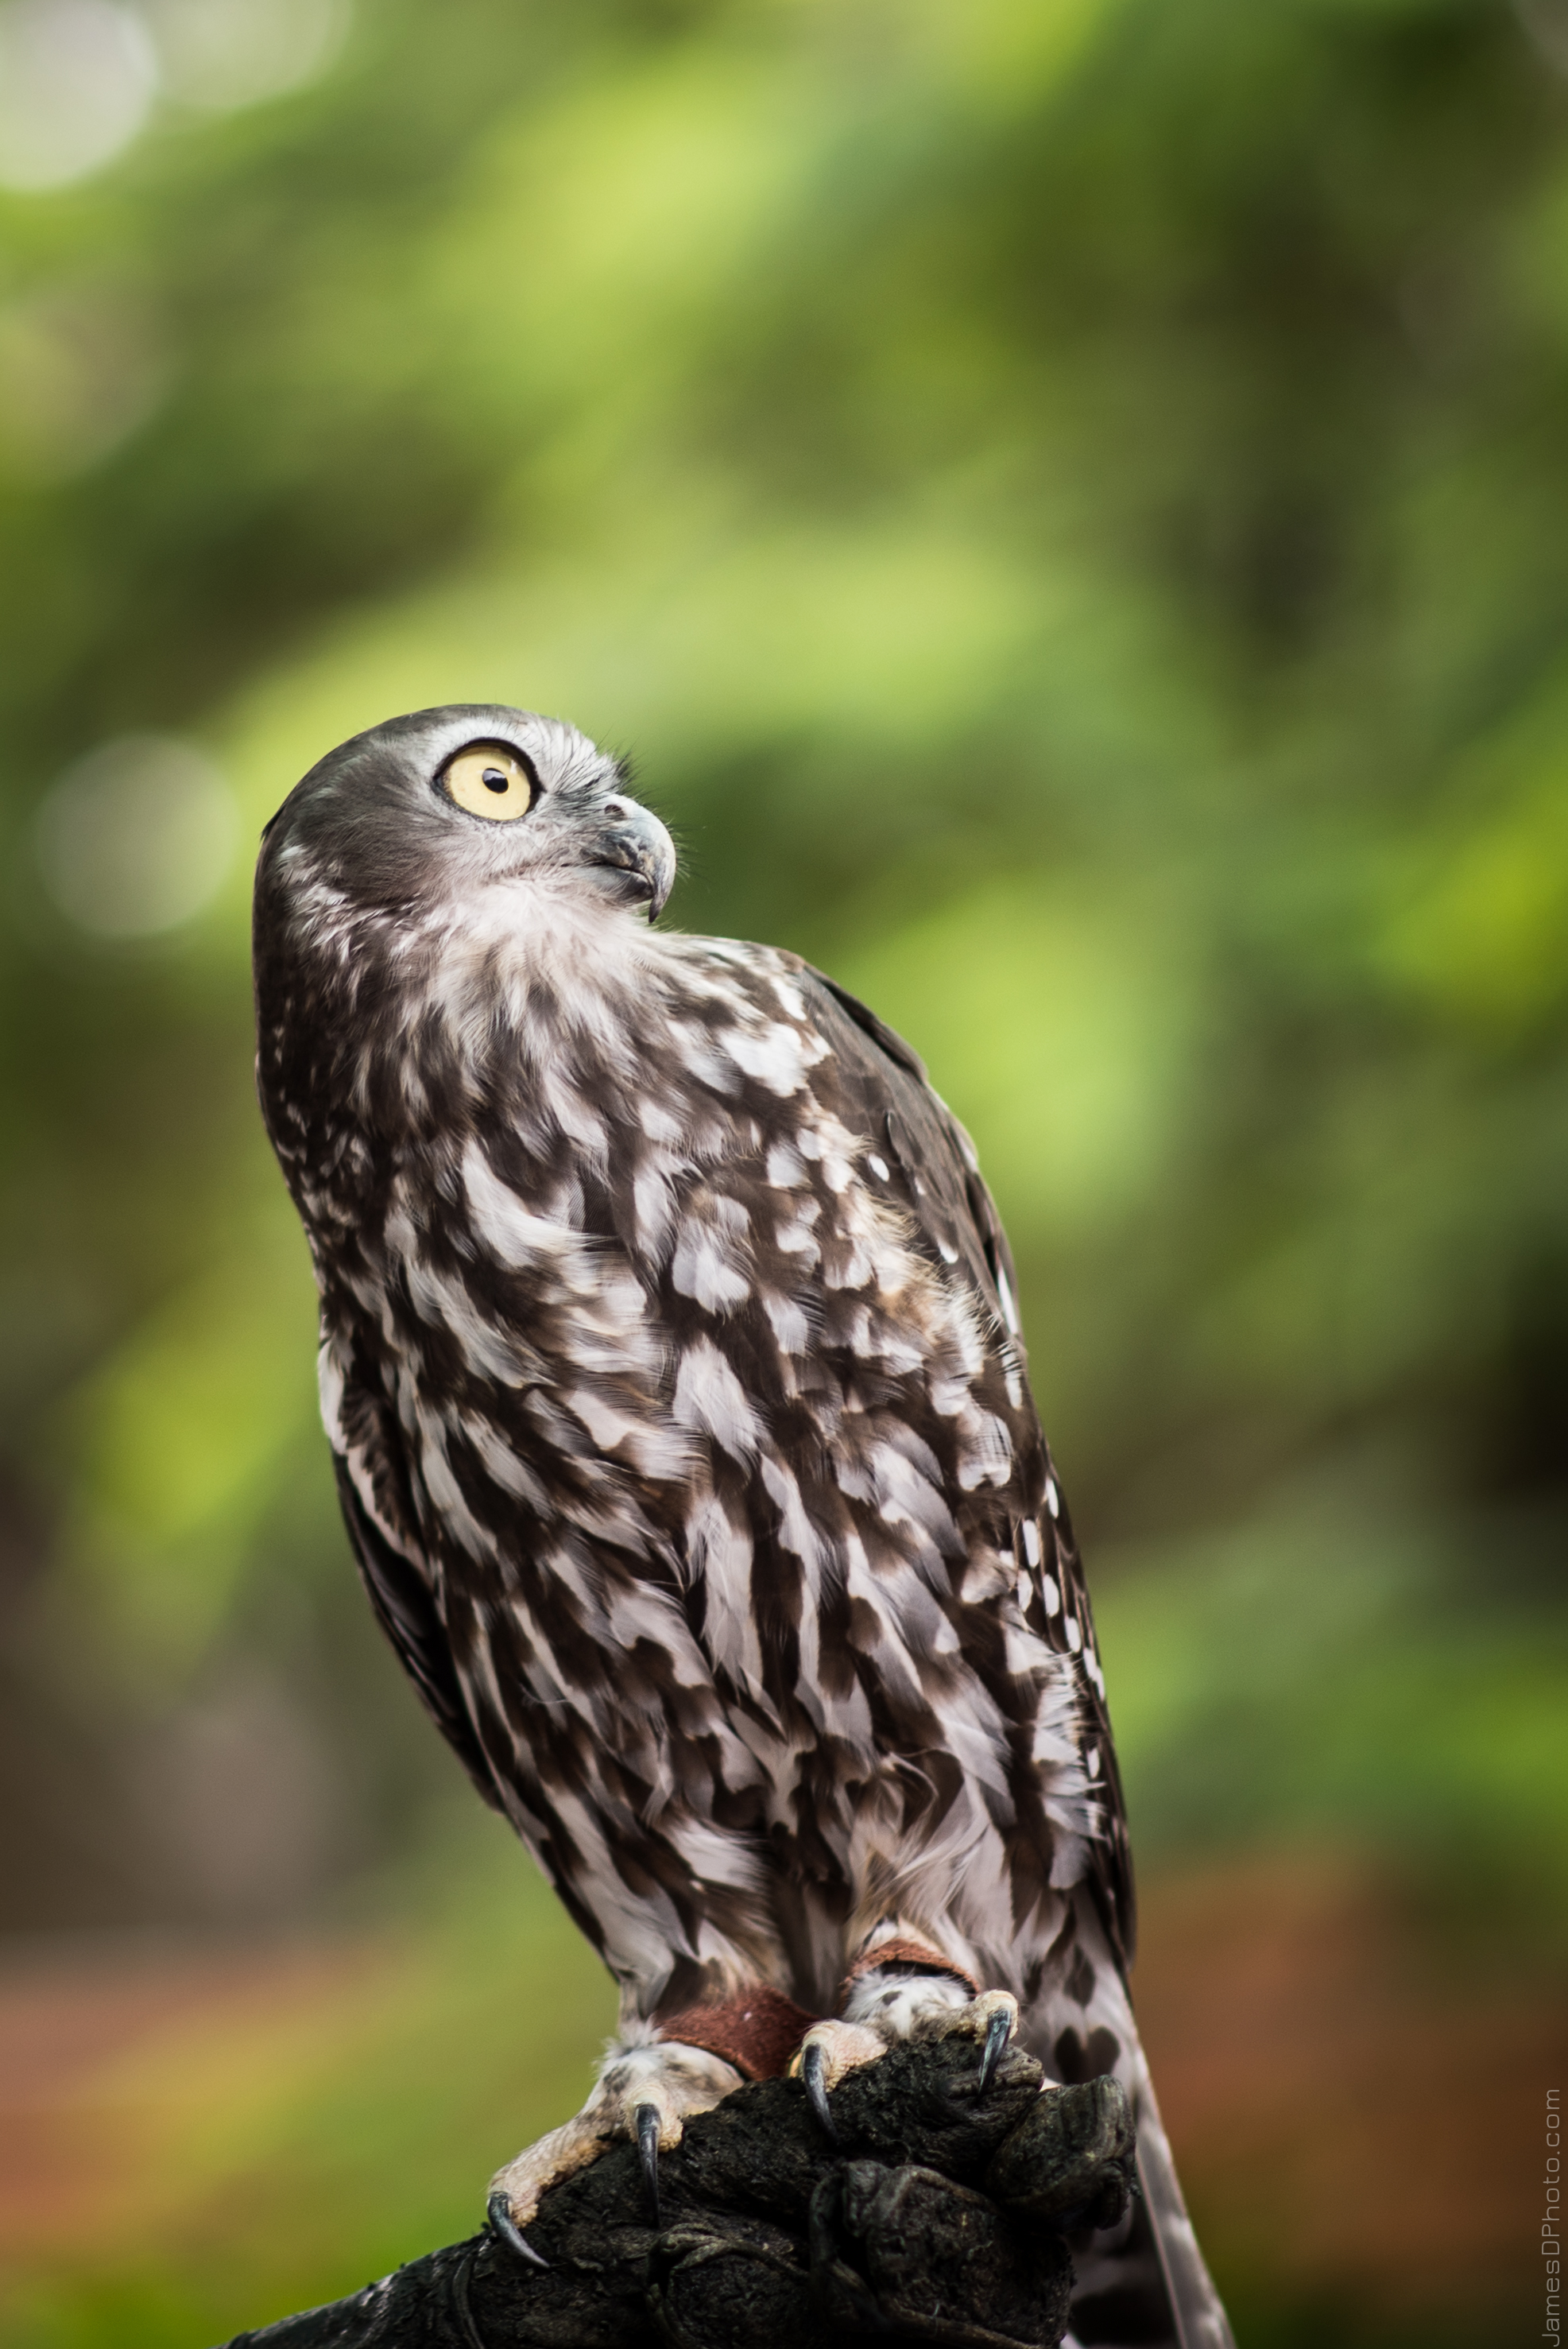 Bundy the Barking Owl